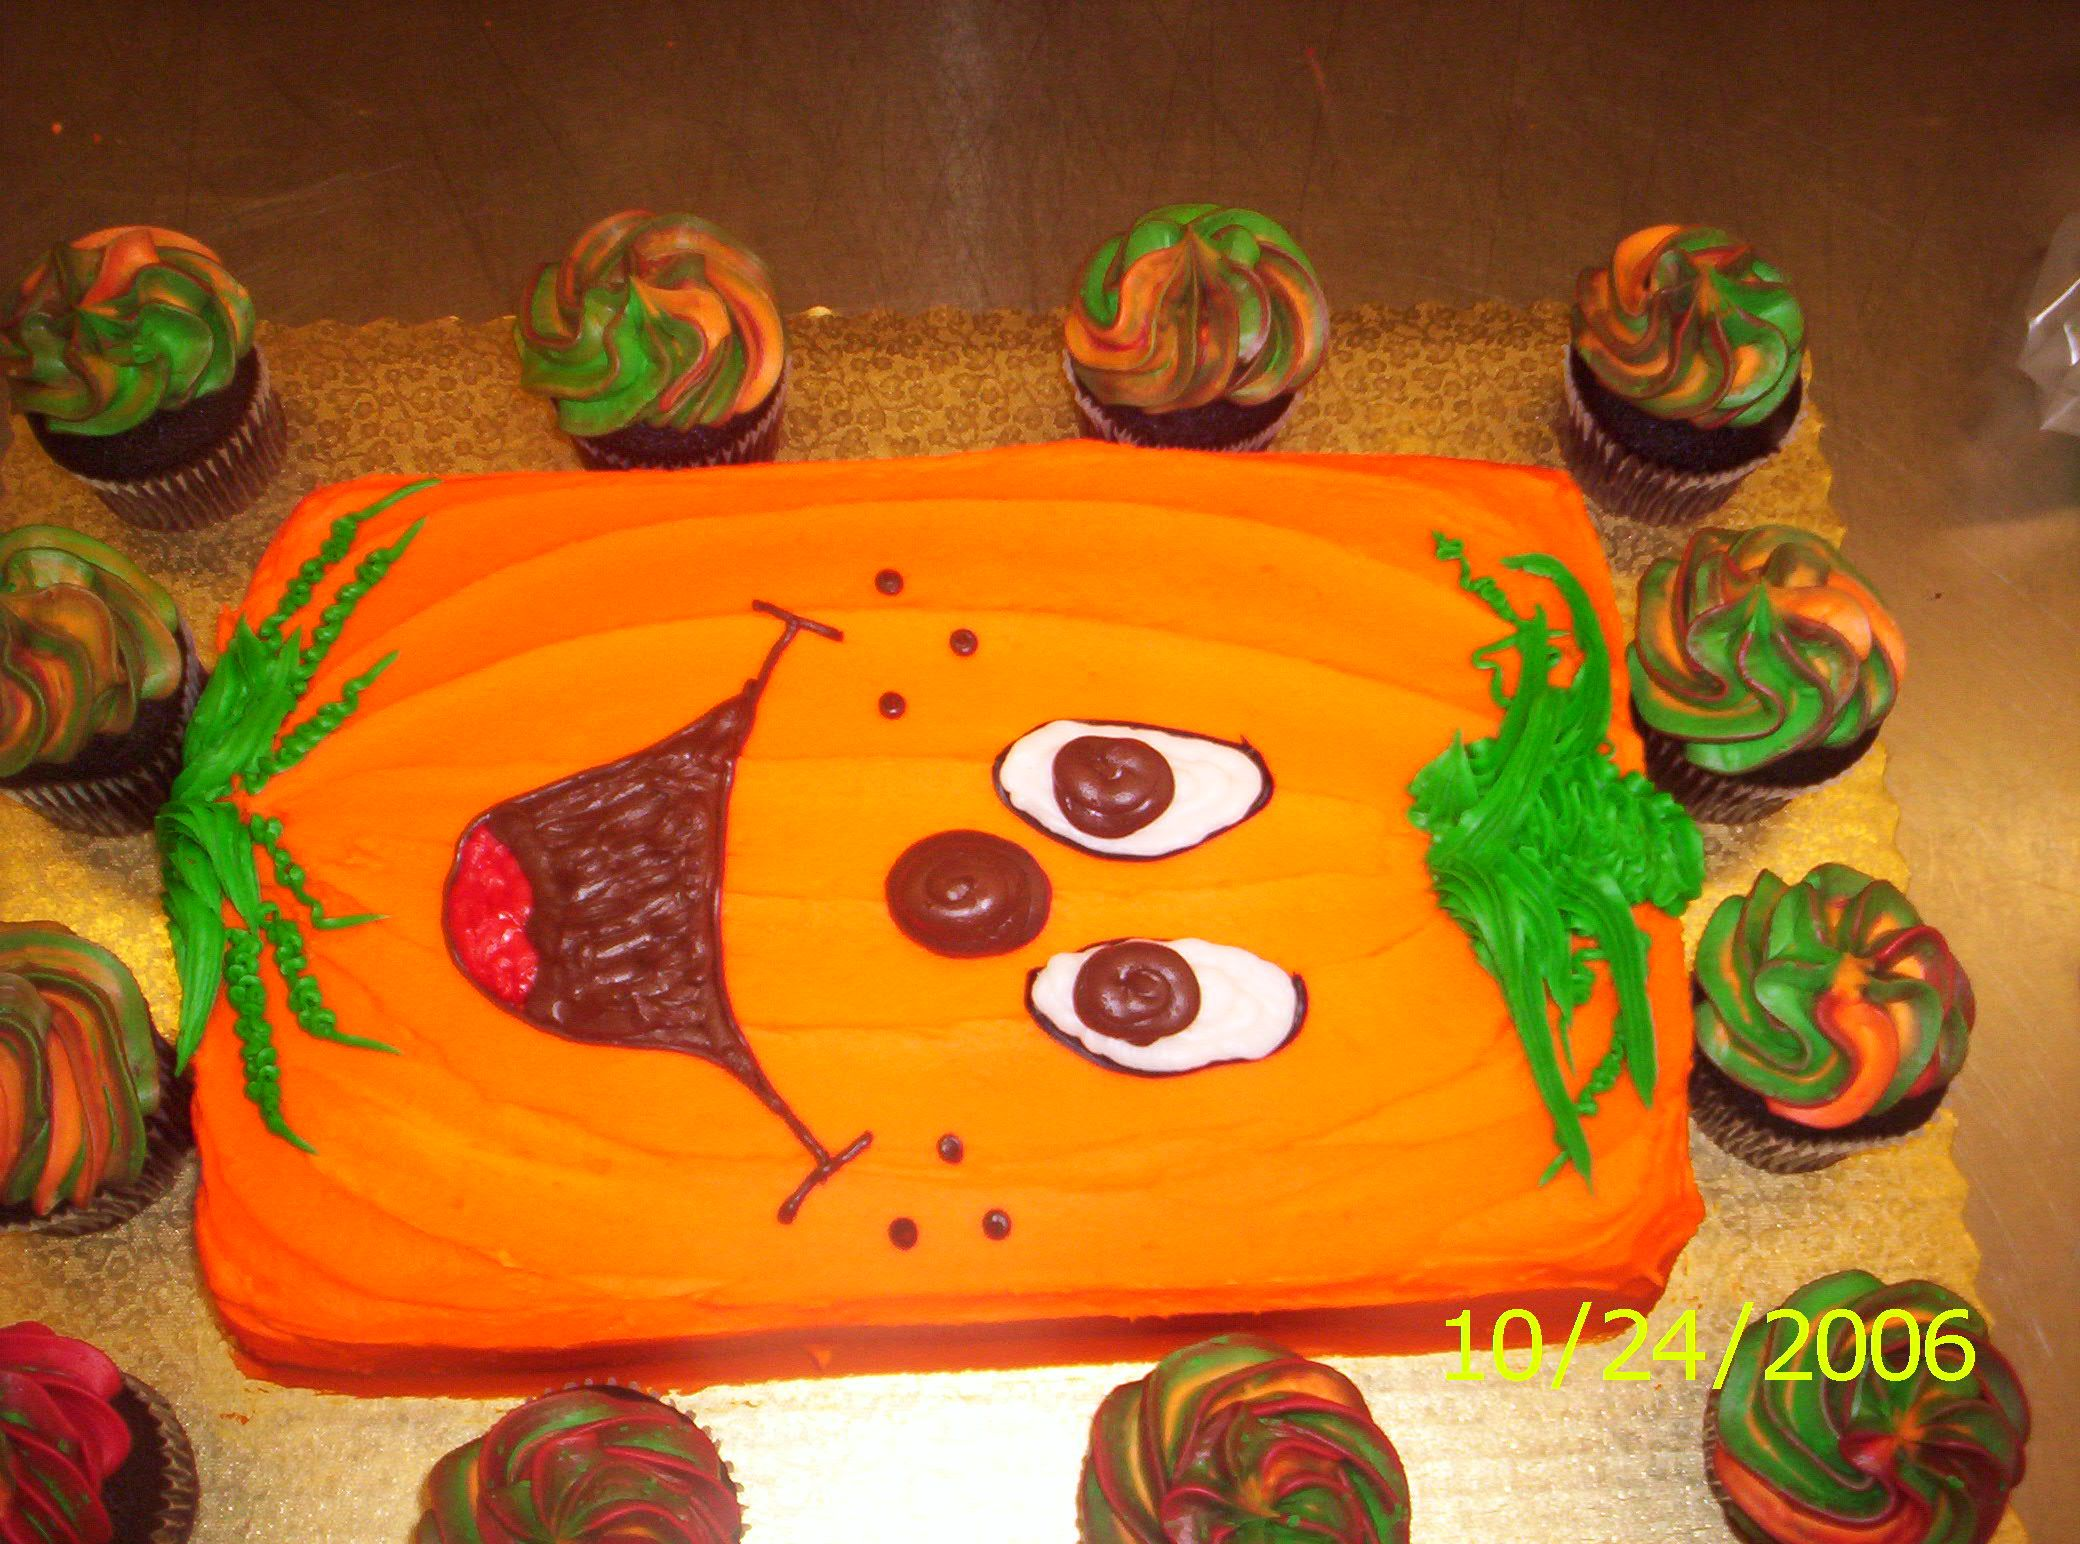 Simple cake decorating ideas for halloween. Simple cake decorating ideas for halloween   Beautiful cakes photo